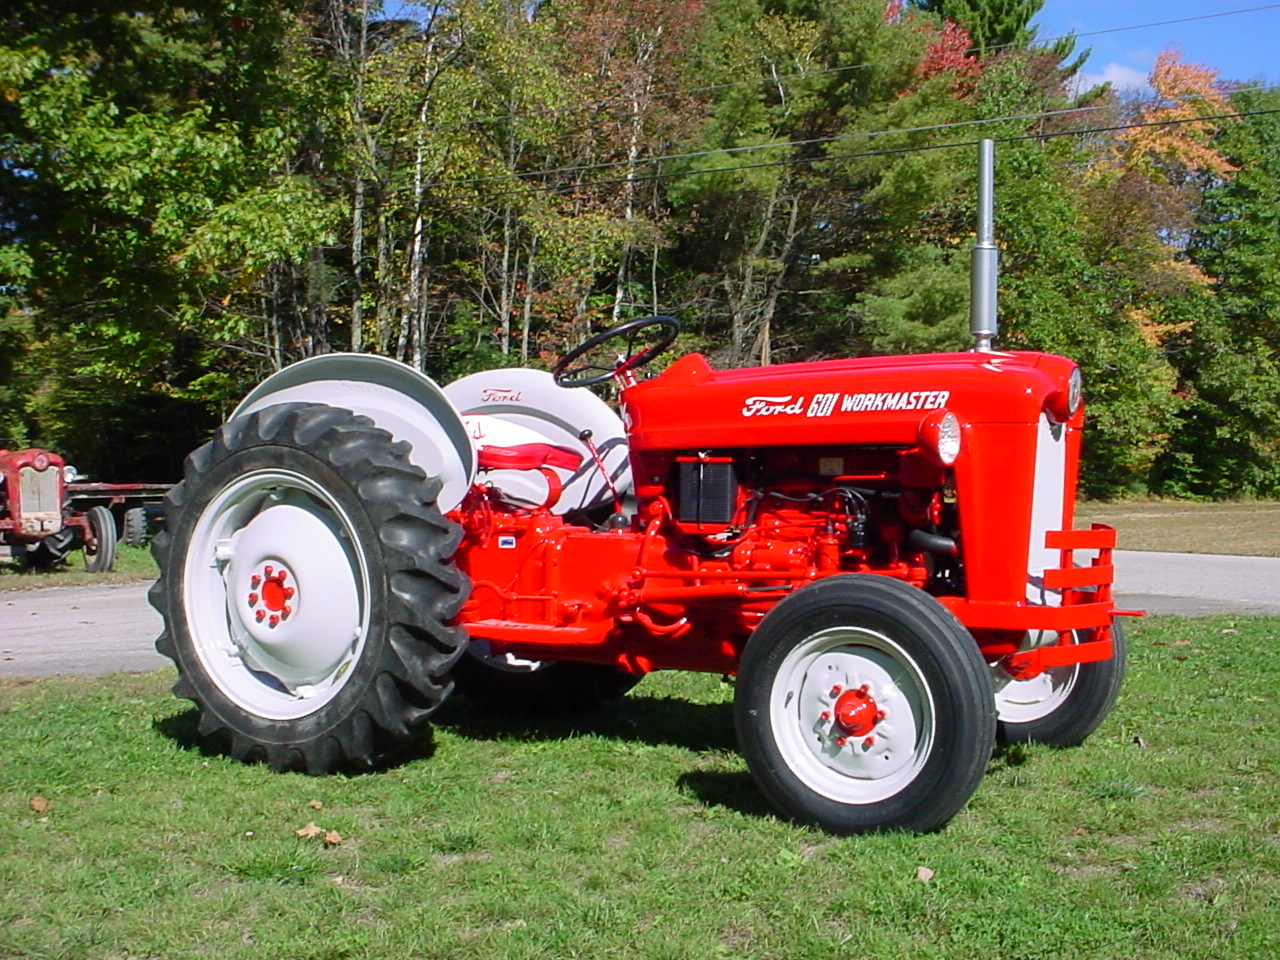 Ford 601 Workmaster Tractor : Windy hill restoration